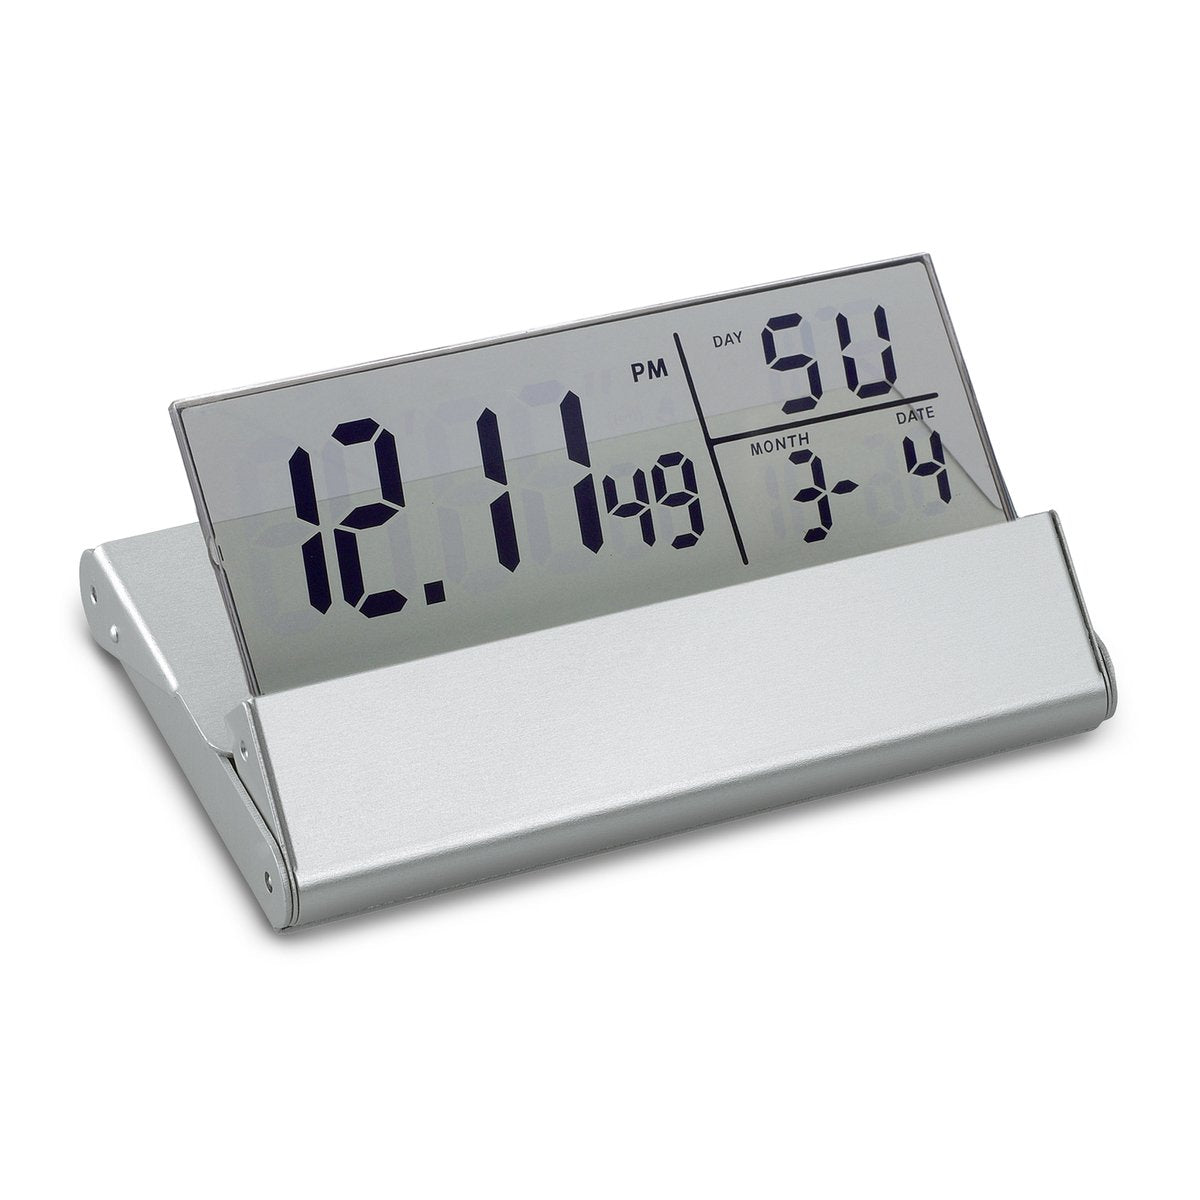 REFLECTS Desk Clock With Alarm Function-LIVERPOOL-VESOUL-NA8199